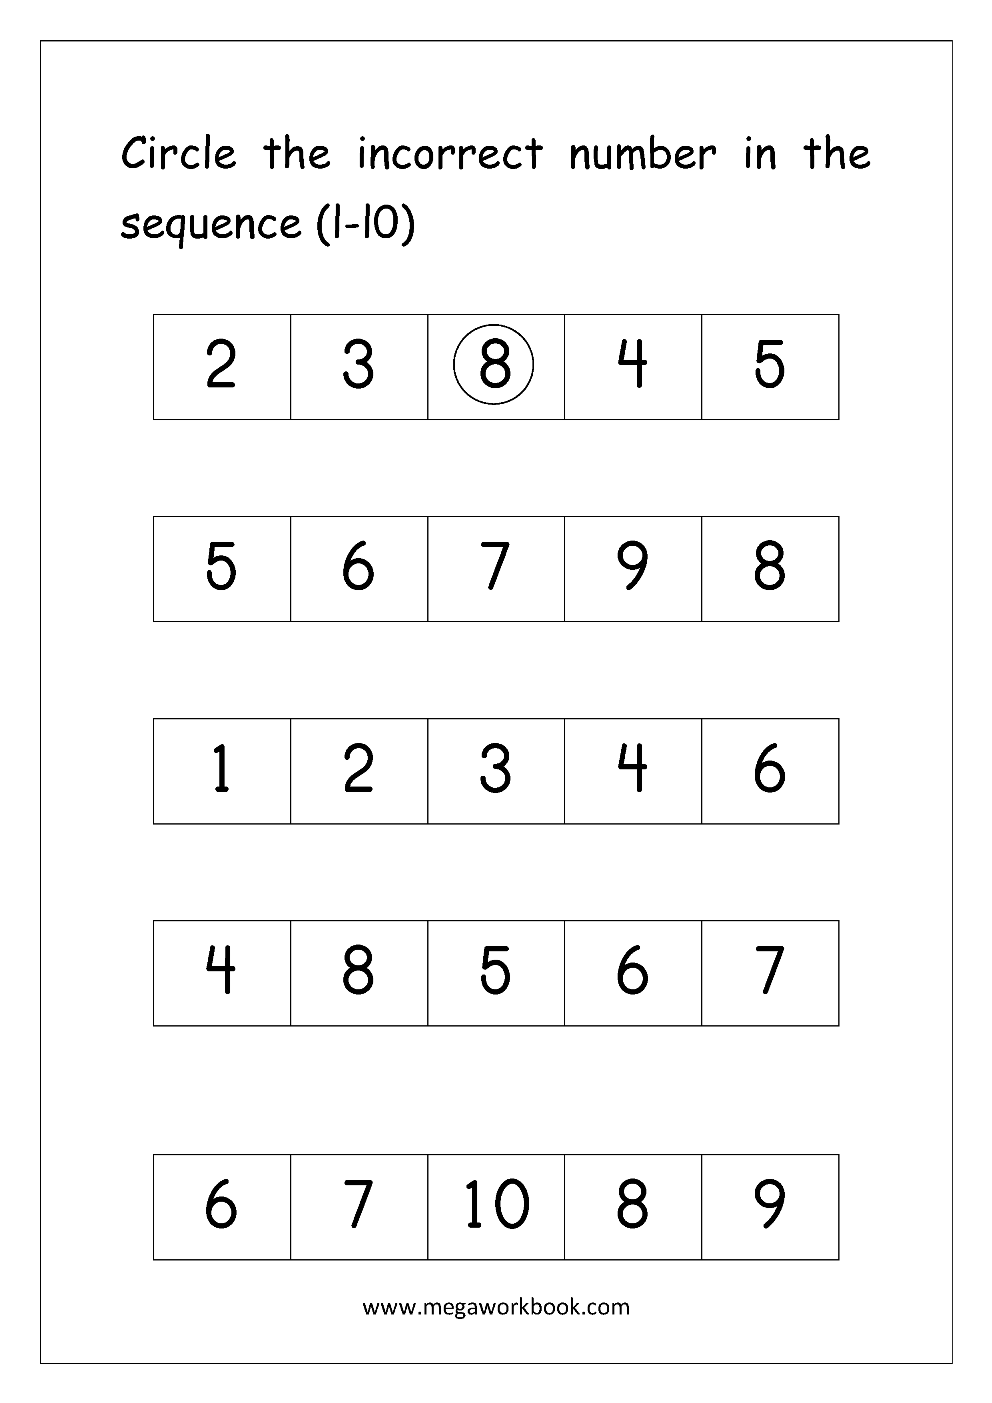 Ordering Numbers Worksheets, Missing Numbers, What comes before and after  Number (1-10, 1-20, 1-50, 1-100) - Free Printables - MegaWorkbook